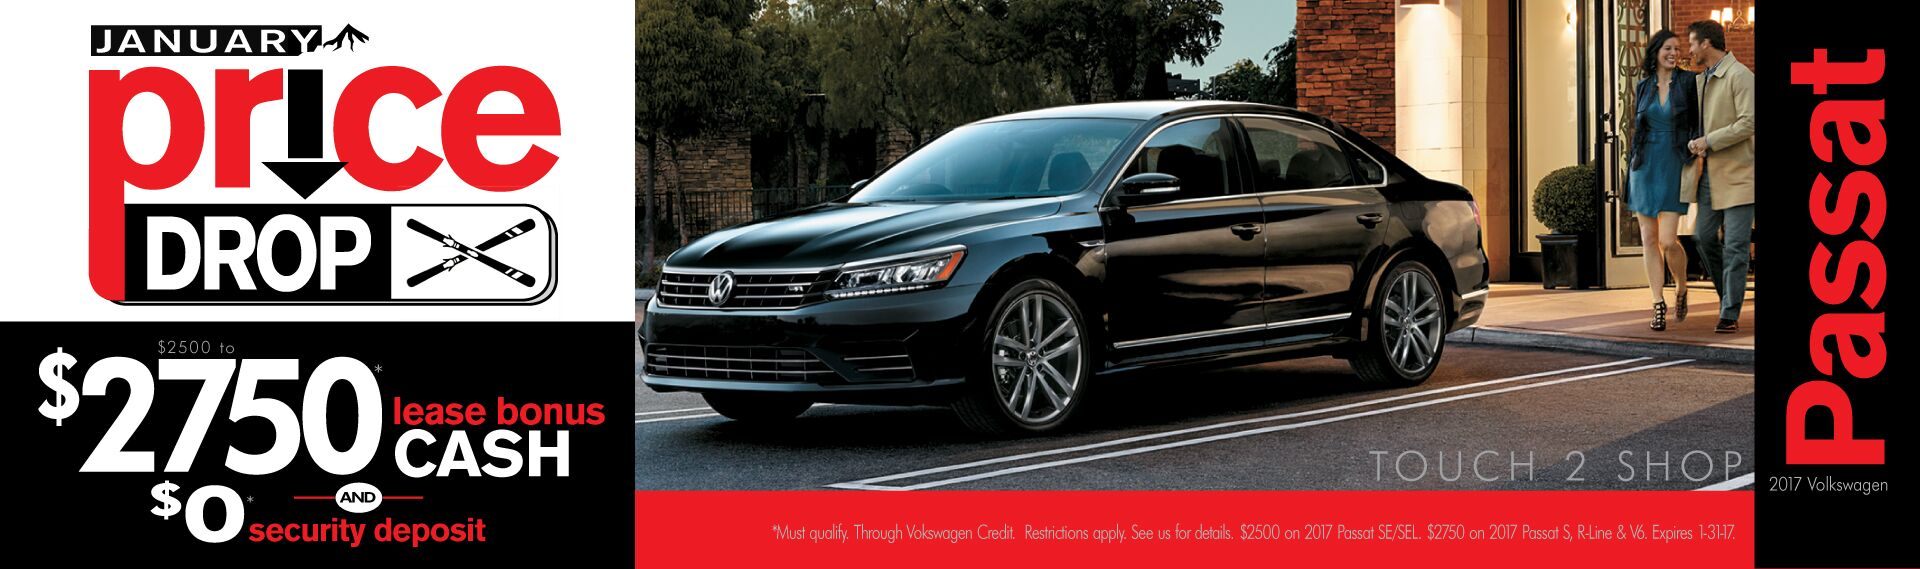 Passat January Price Drop